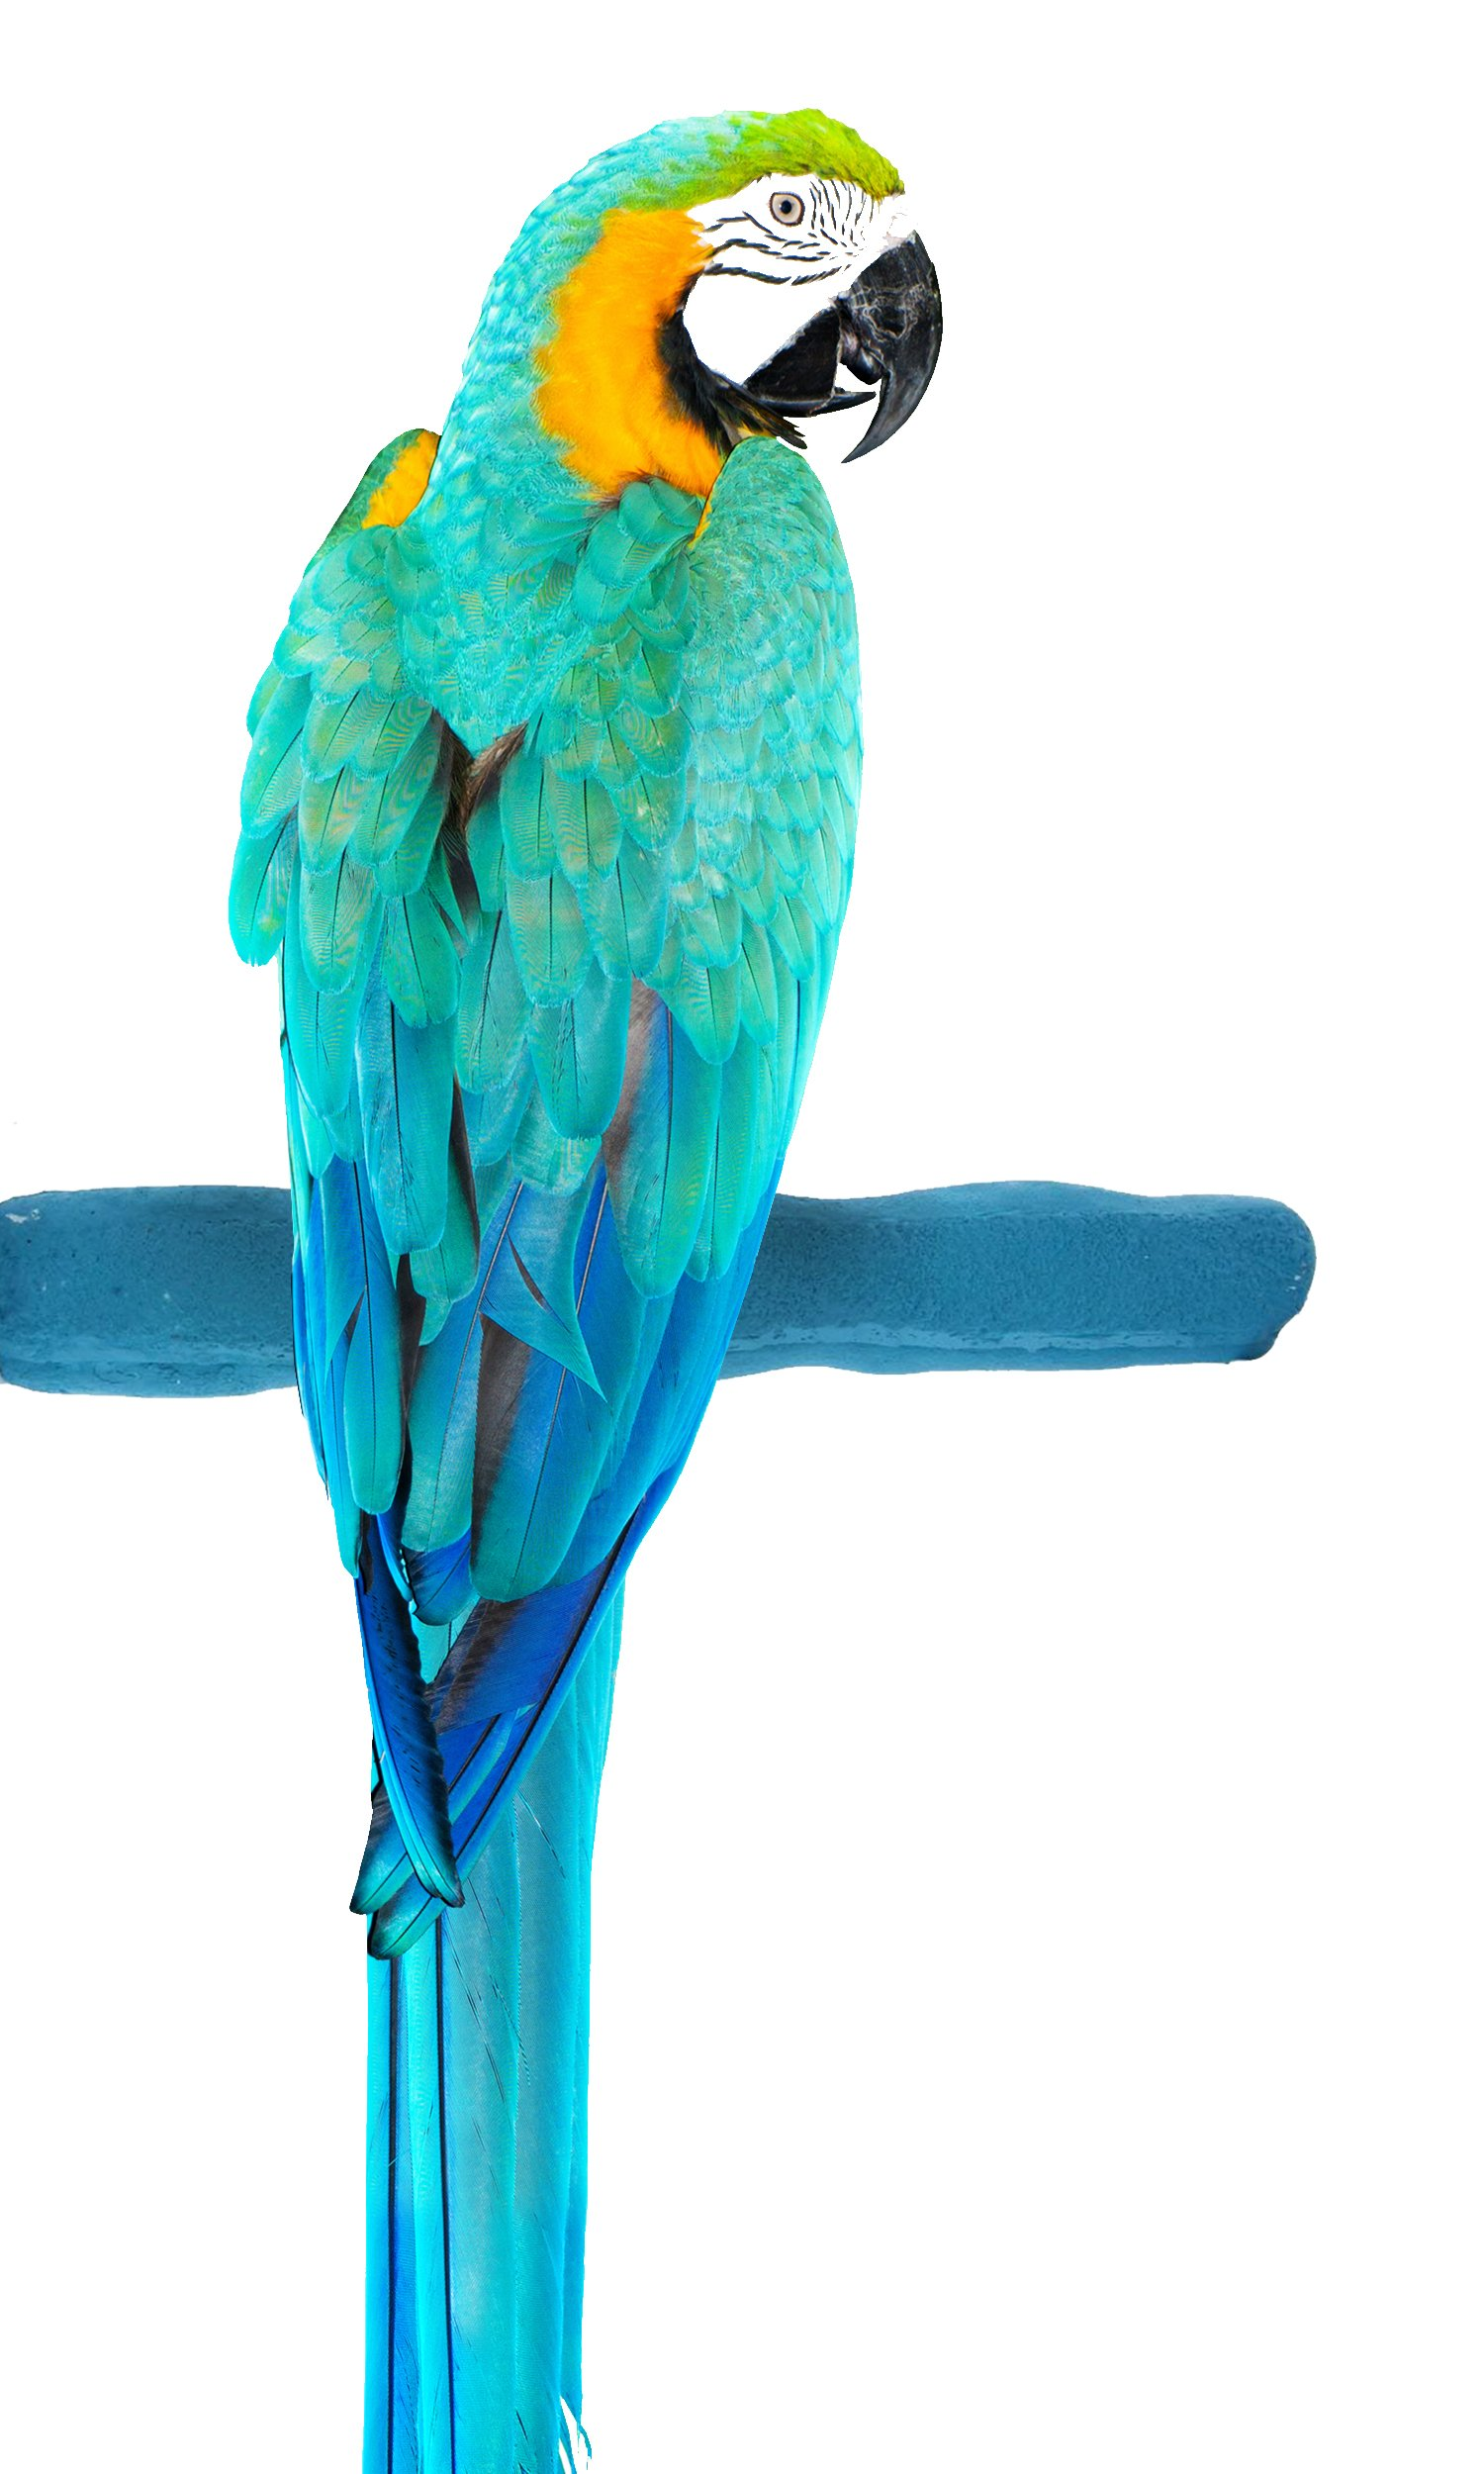 Sweet Feet and Beak Comfort Grip Safety Bird Pumice Perch - Patented Perch - Keeps Nails and Beak in Top Condition - Imitates Birds' Life in The Wild - Non-Toxic - Hangs Easily - Large - Blue by Sweet Feet and Beak